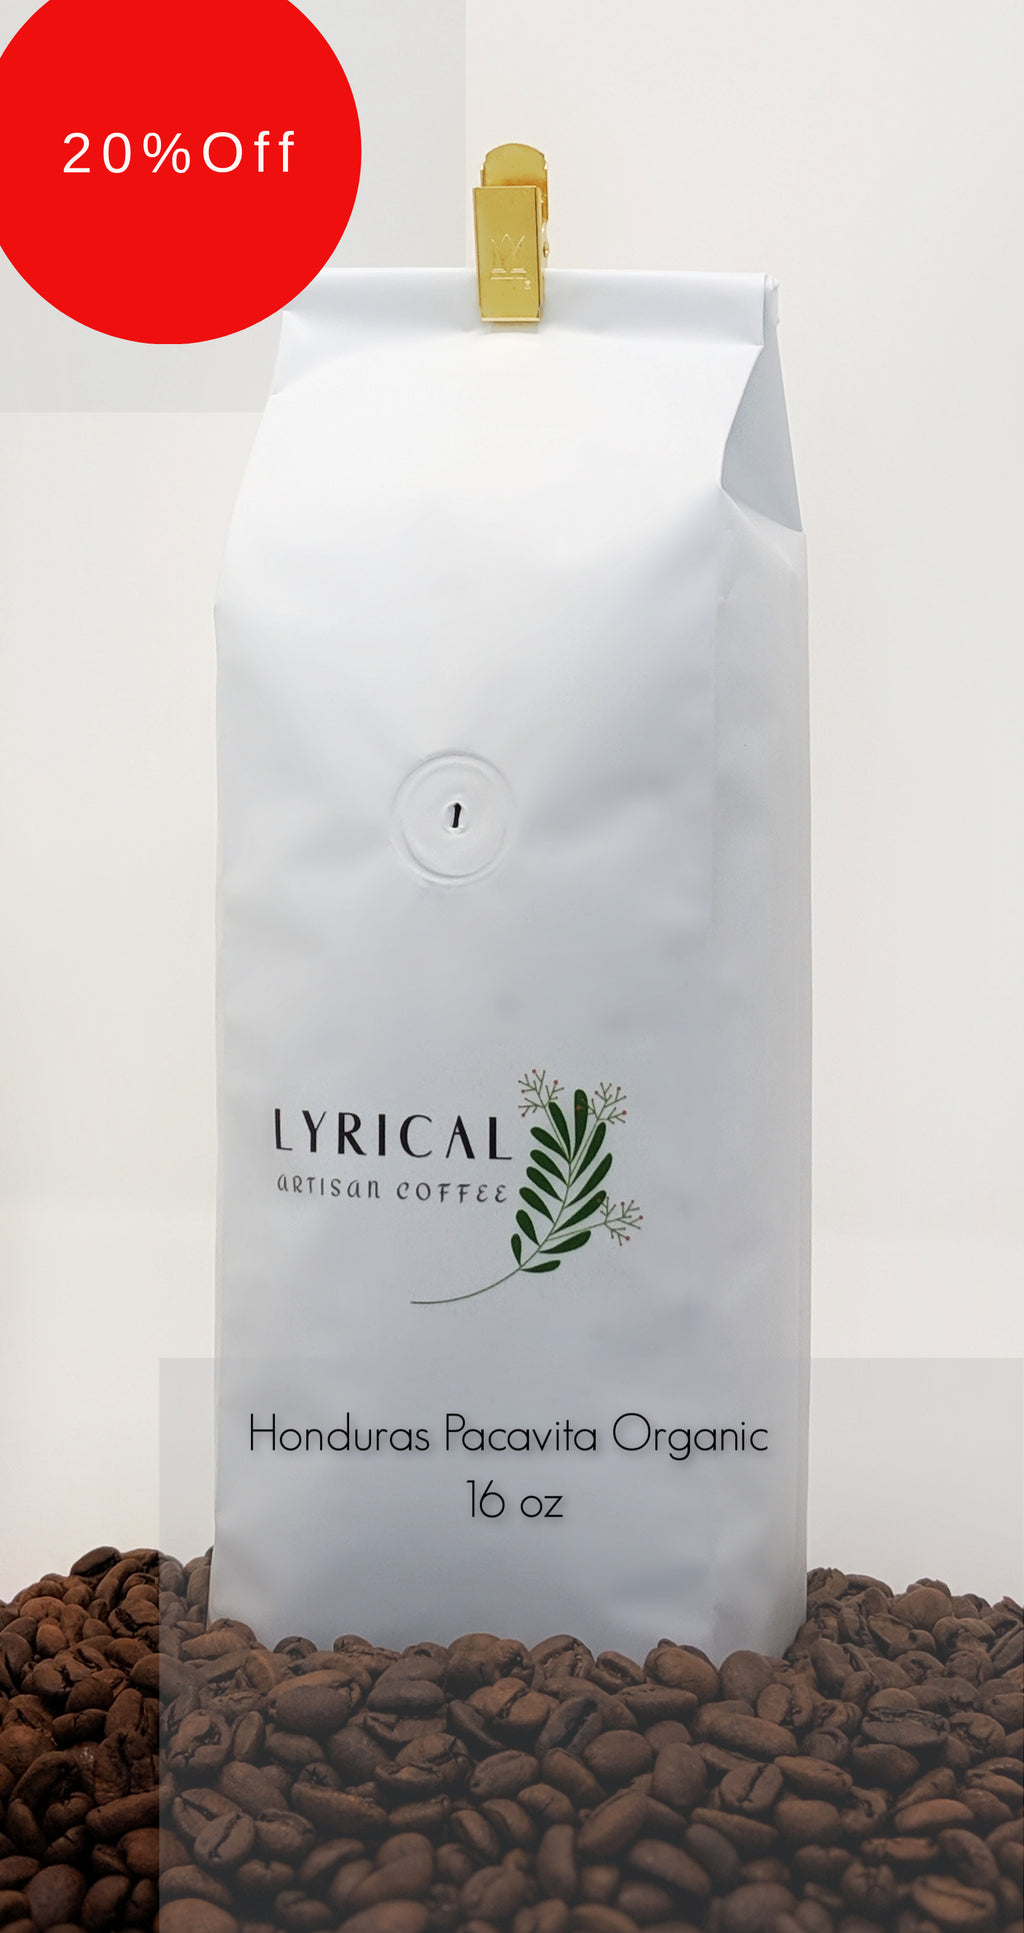 Honduras Pacavita Organic | 20% Off! | Discount Taken at Checkout